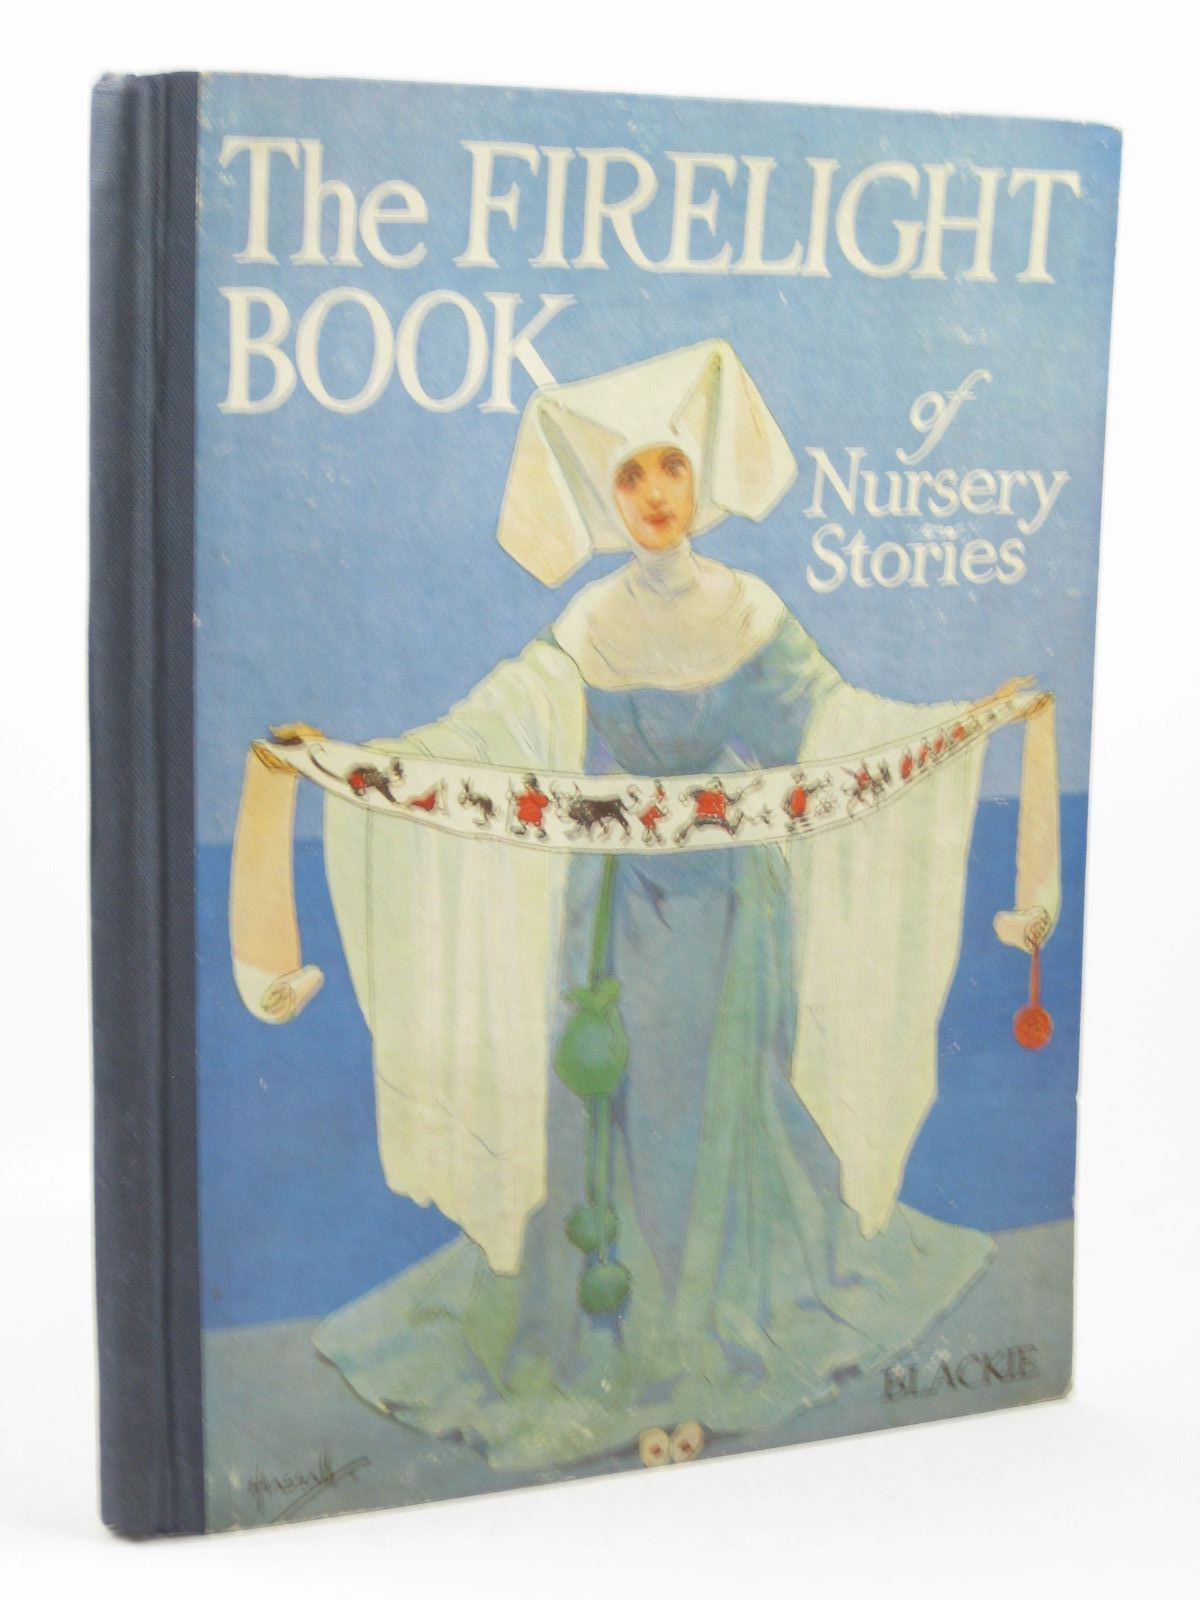 Photo of THE FIRELIGHT BOOK OF NURSERY STORIES illustrated by Hassall, John published by Blackie & Son Ltd. (STOCK CODE: 1312639)  for sale by Stella & Rose's Books